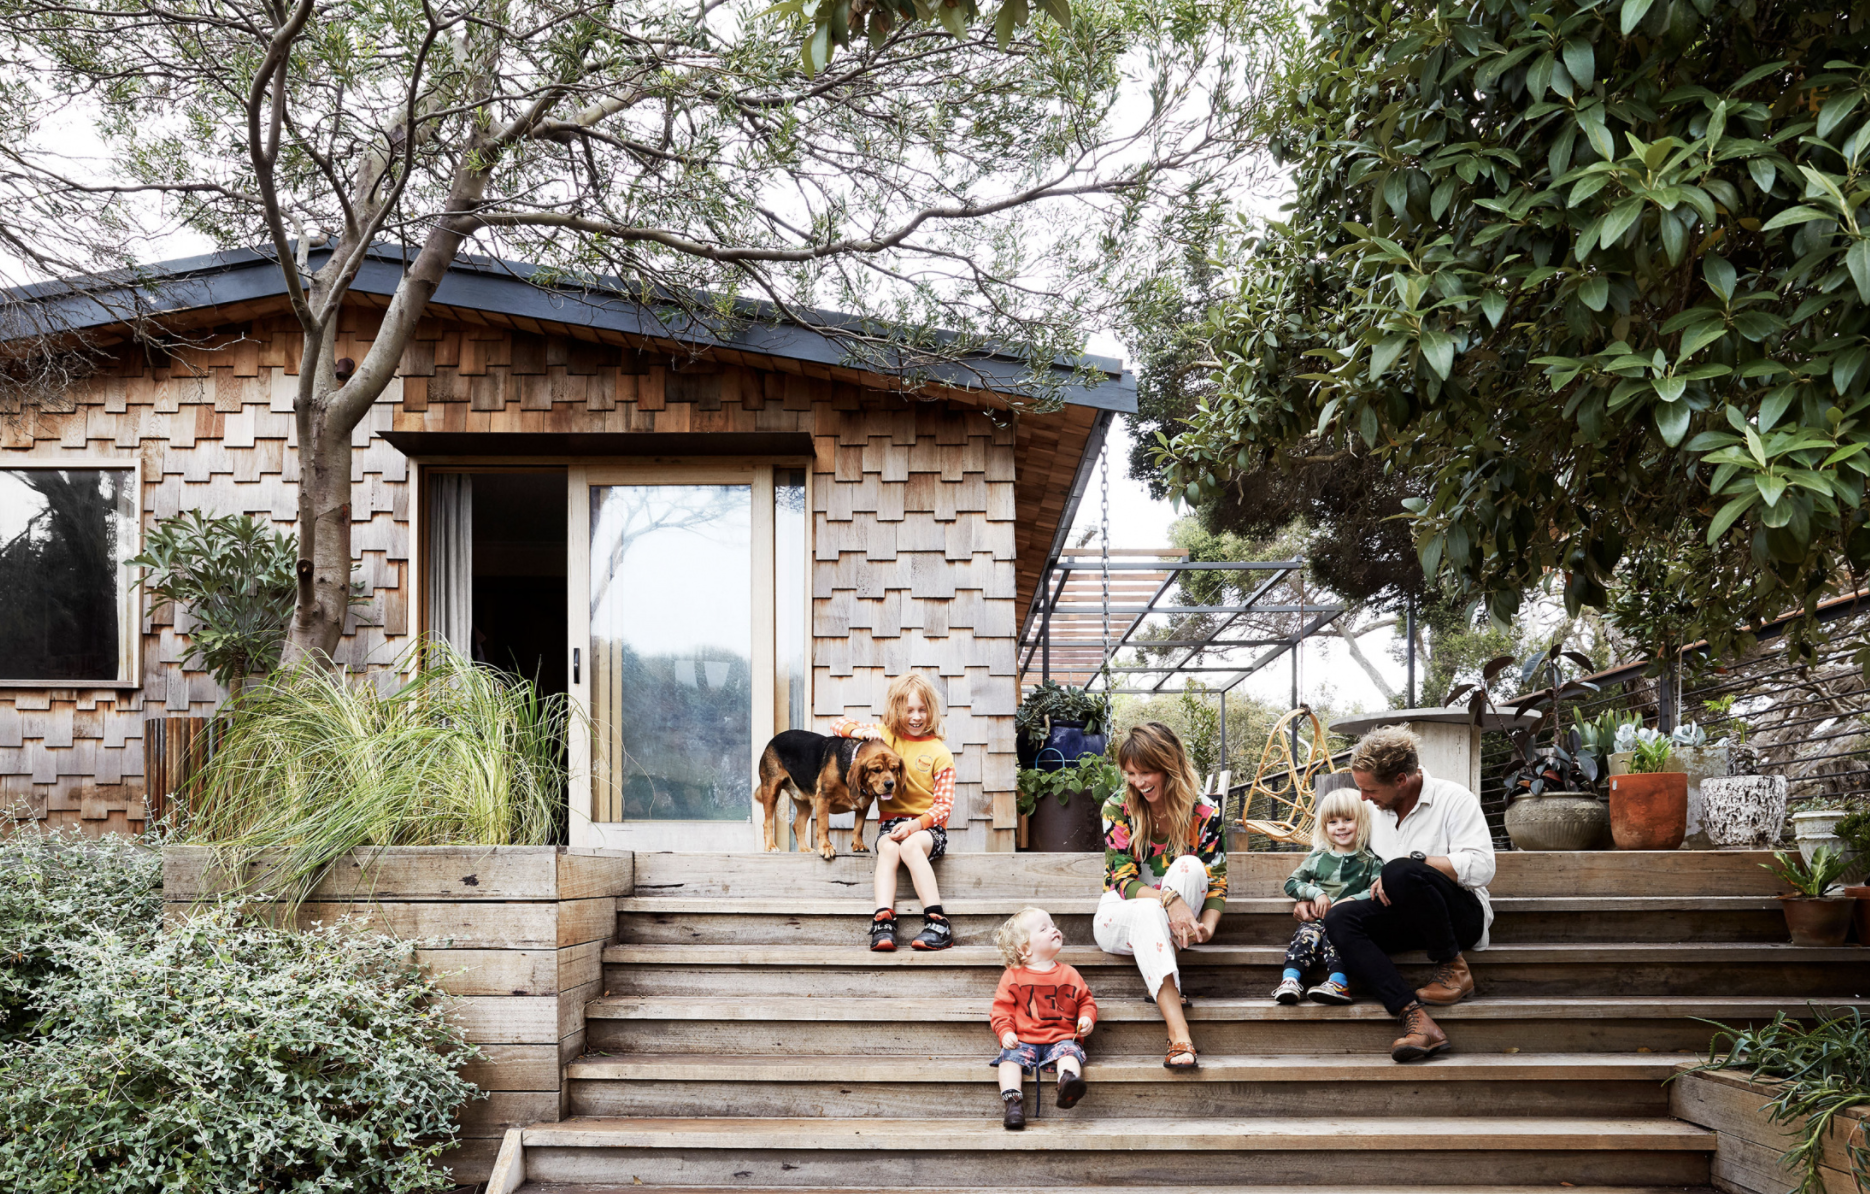 When Her Family Outgrew Their Home, Kip&Co's Kate Heppell Didn't Upsize. She Tells Us Why Two Homes Works For Them